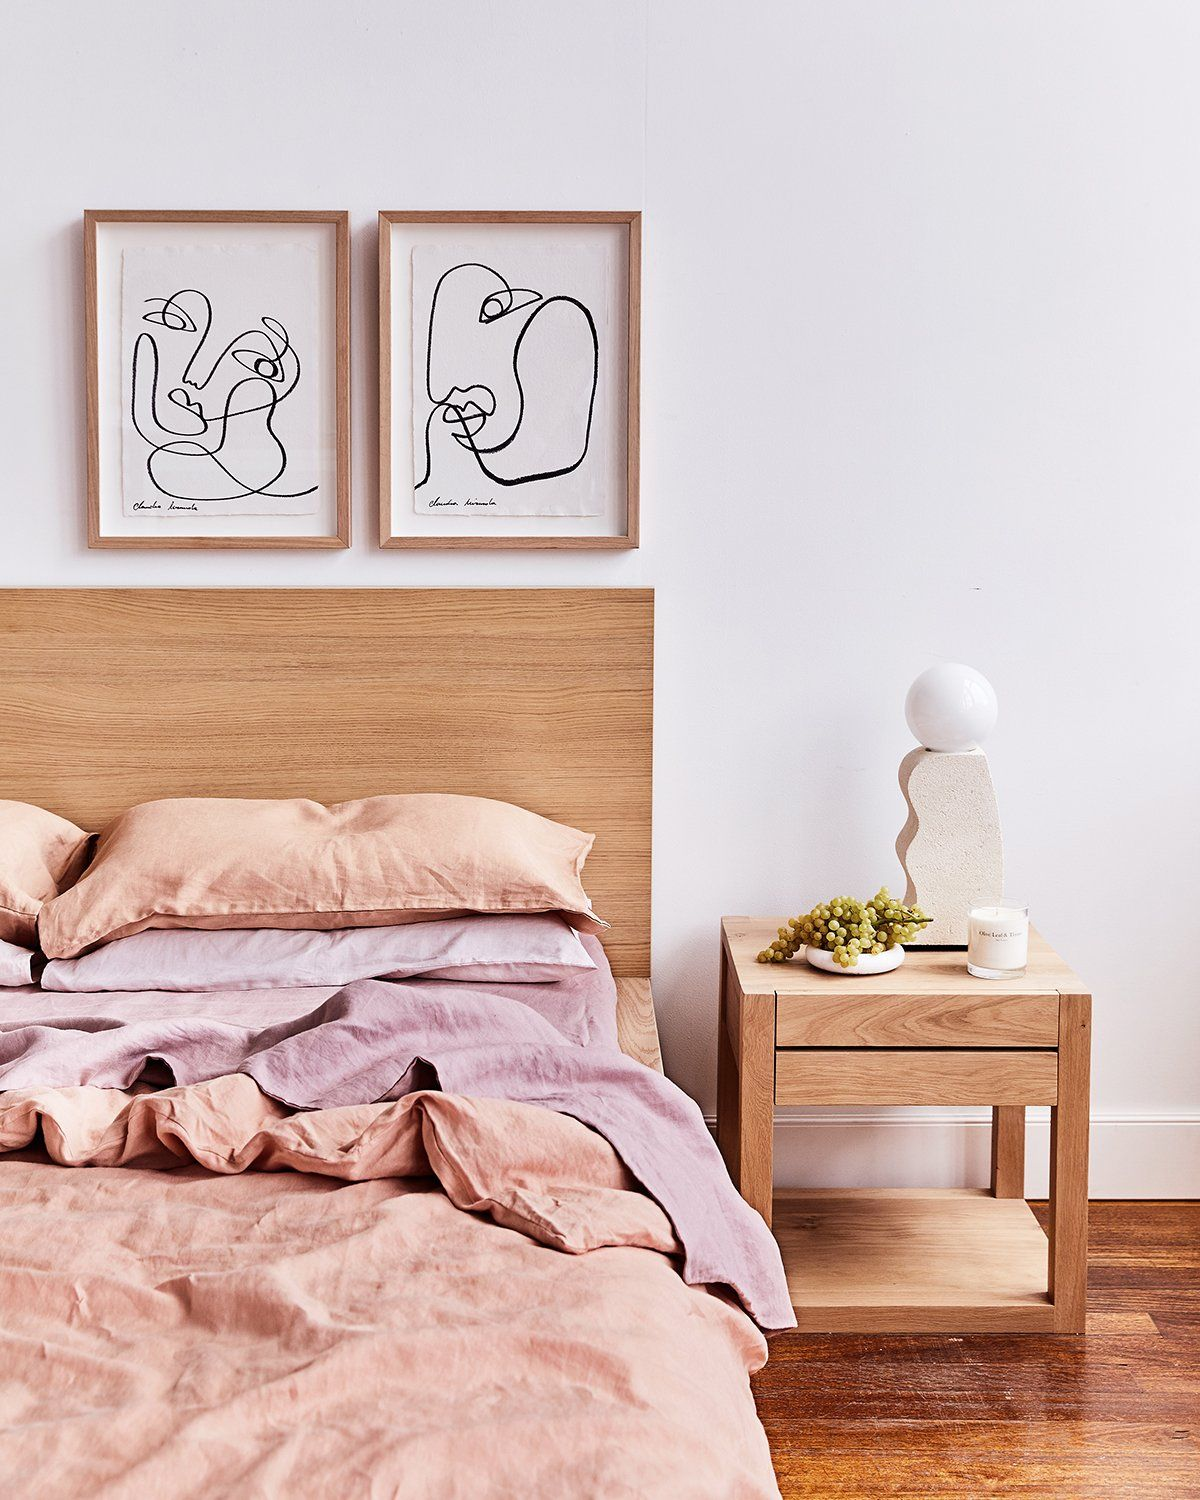 Claudia Miranda x Bed Threads 'Going With You' Print in